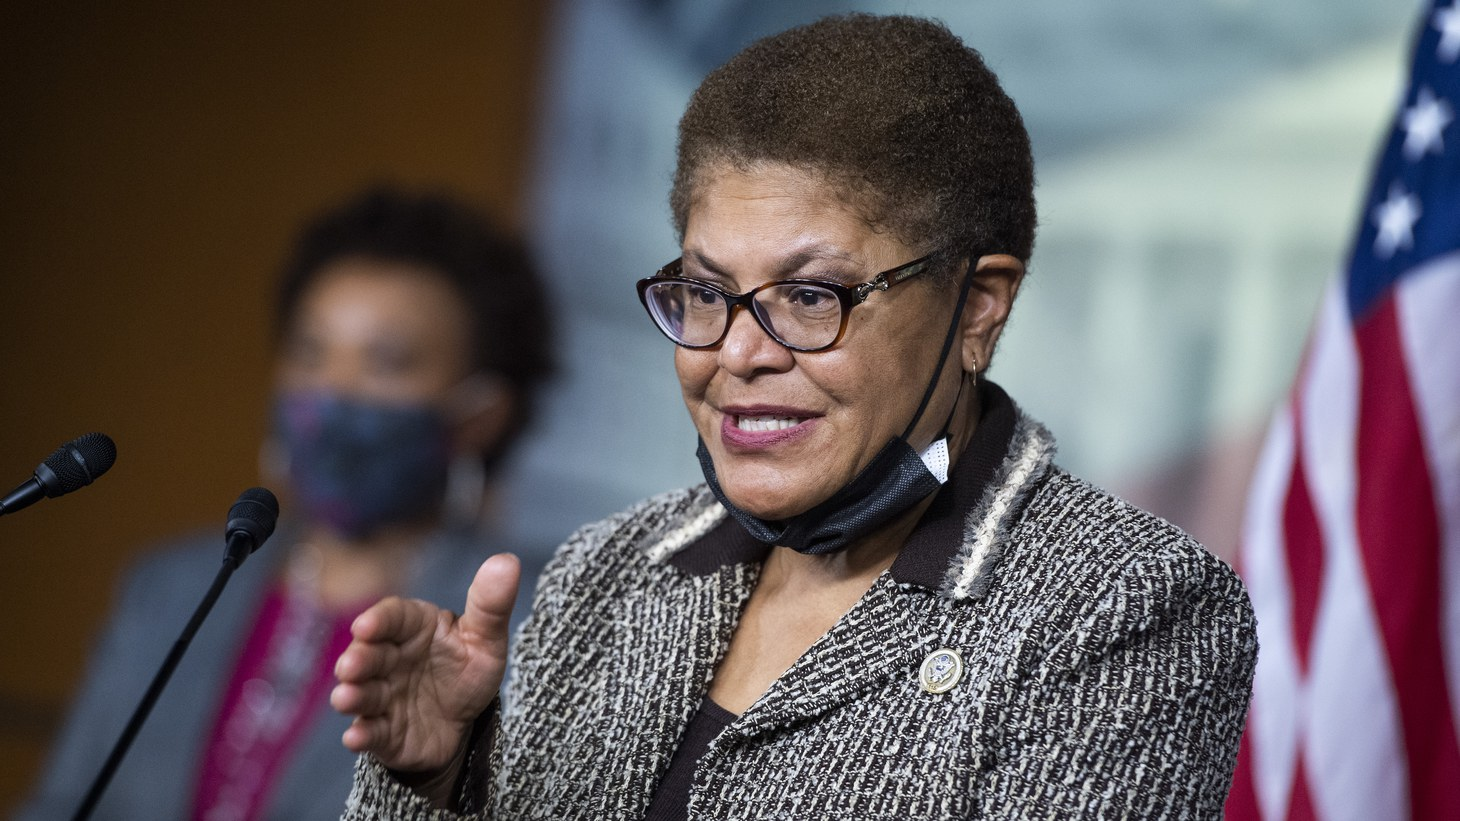 Rep. Karen Bass, D-Calif., chair of the Congressional Black Caucus, and Rep. Barbara Lee, D-Calif., left, conduct a news conference on the Jobs and Justice Act of 2020, which aims to increase the upward social mobility of Black families and help ensure equal protection under the law, in the Capitol Visitor Center on Wednesday, September 23, 2020.